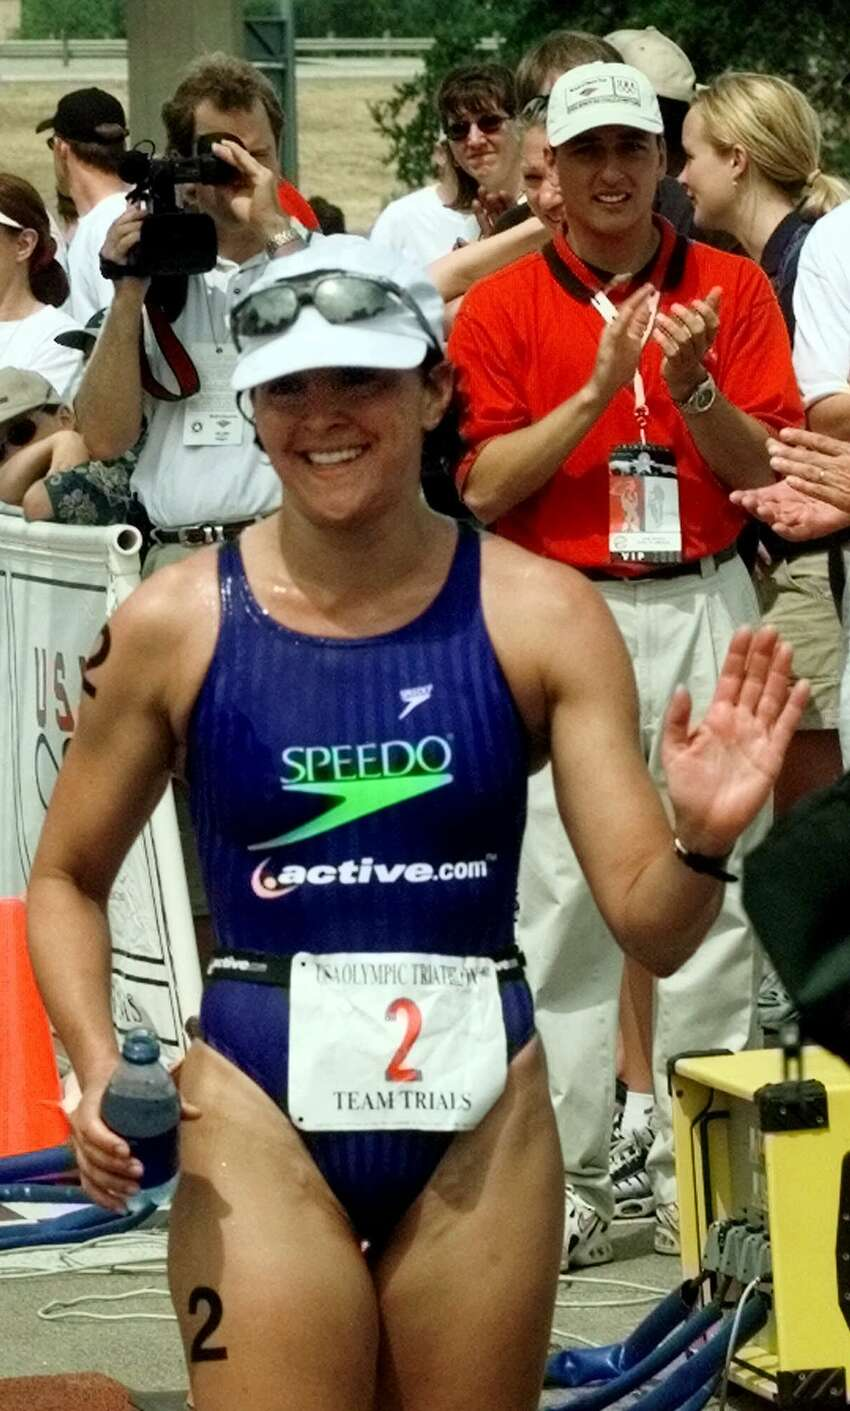 Jennifer Gutierrez, The graduate of Holmes High School competed at the first Olympic triathlon at the 2000 Summer Olympics. She was the first American to qualify for the event.